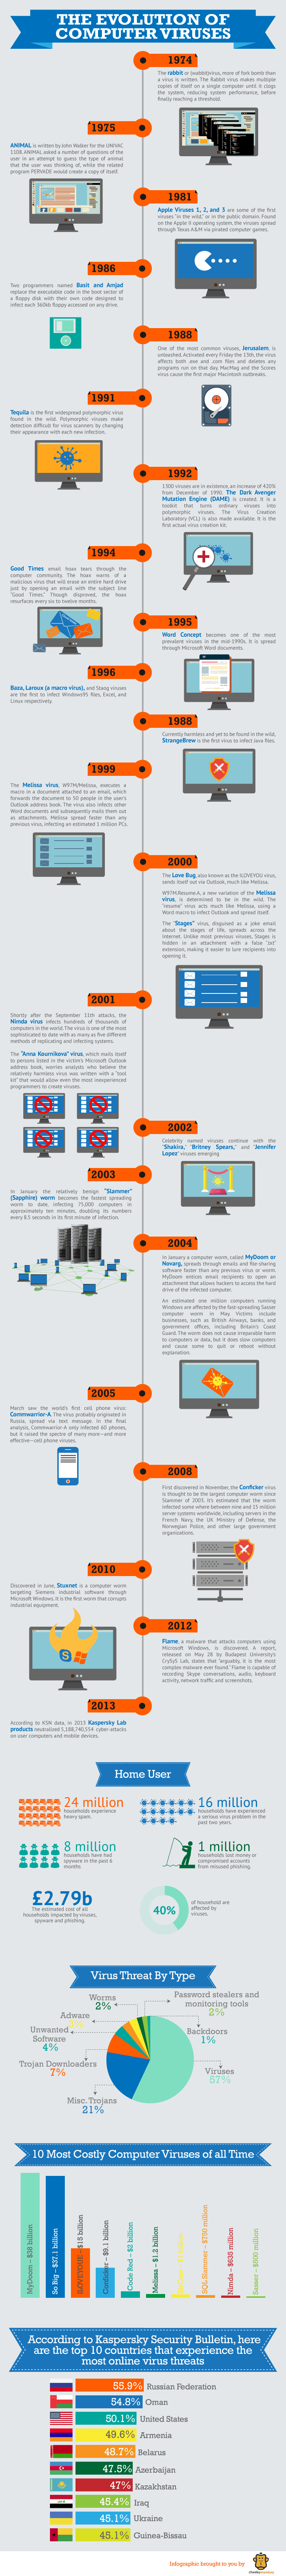 The History of Computer Viruses Infographic